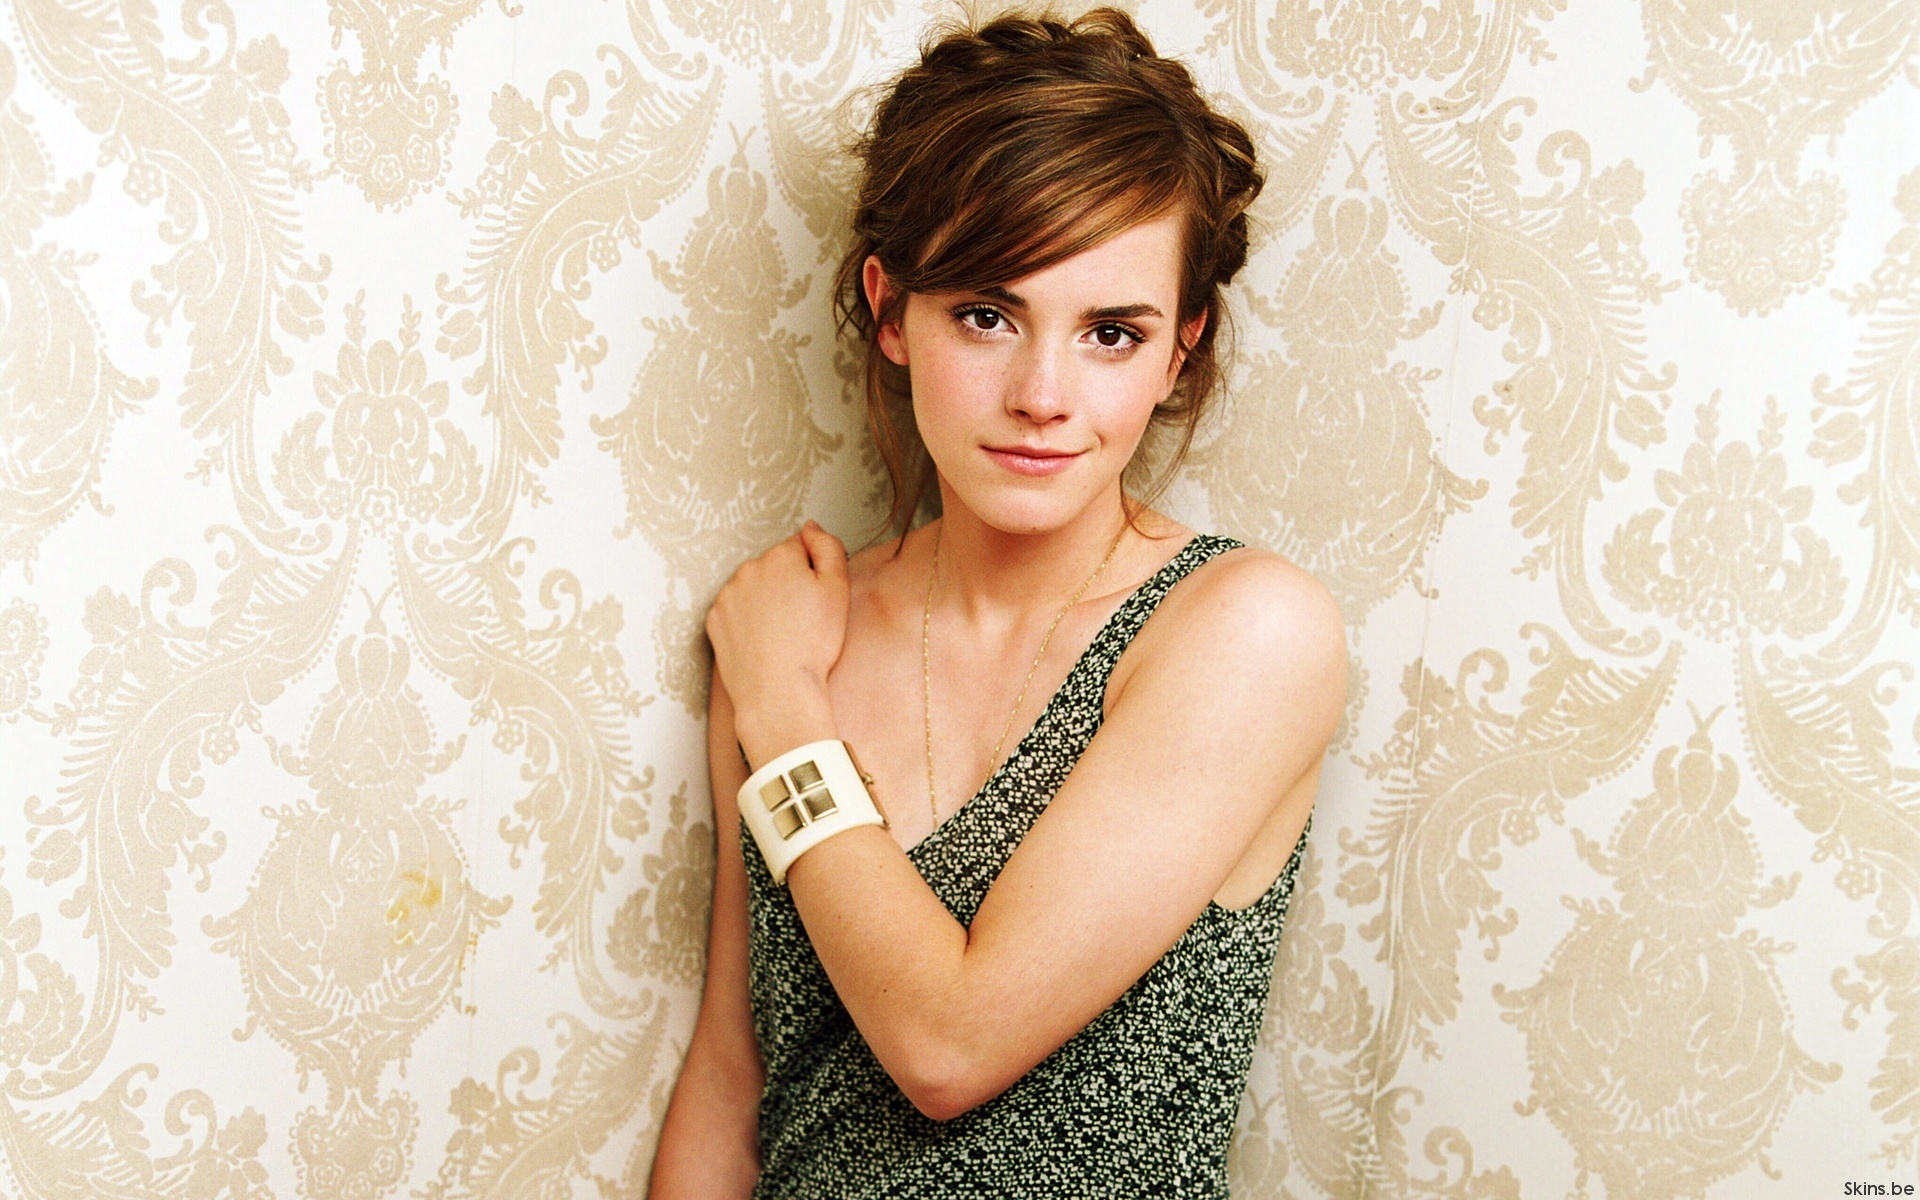 The sexiest emma watson hd wallpapers all hd wallpapers - Cute emma watson wallpaper ...